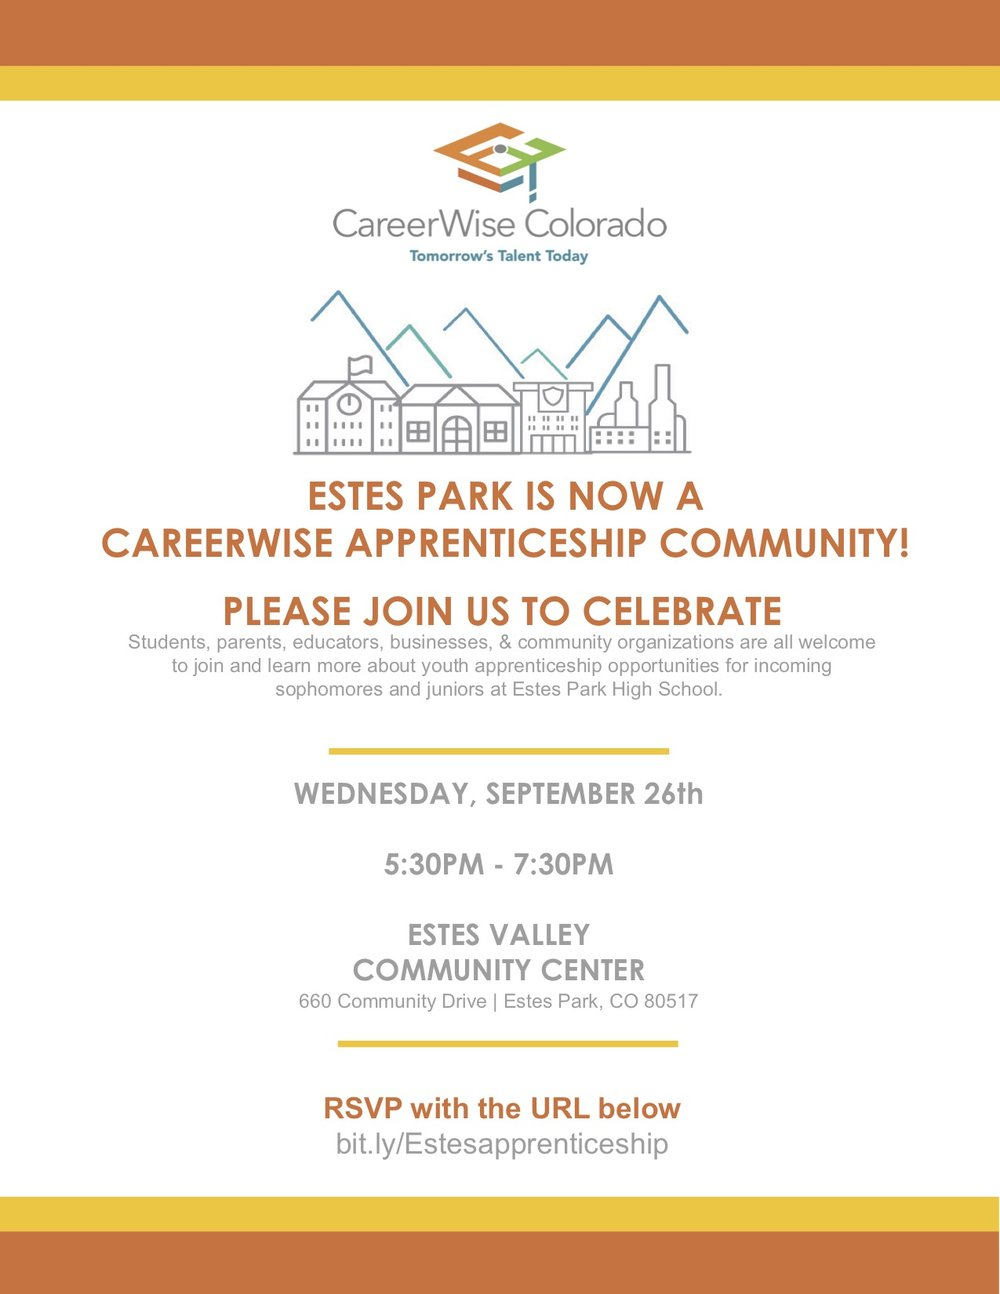 Estes-Park-Apprenticeship-Careerwise-Celebrations.jpg